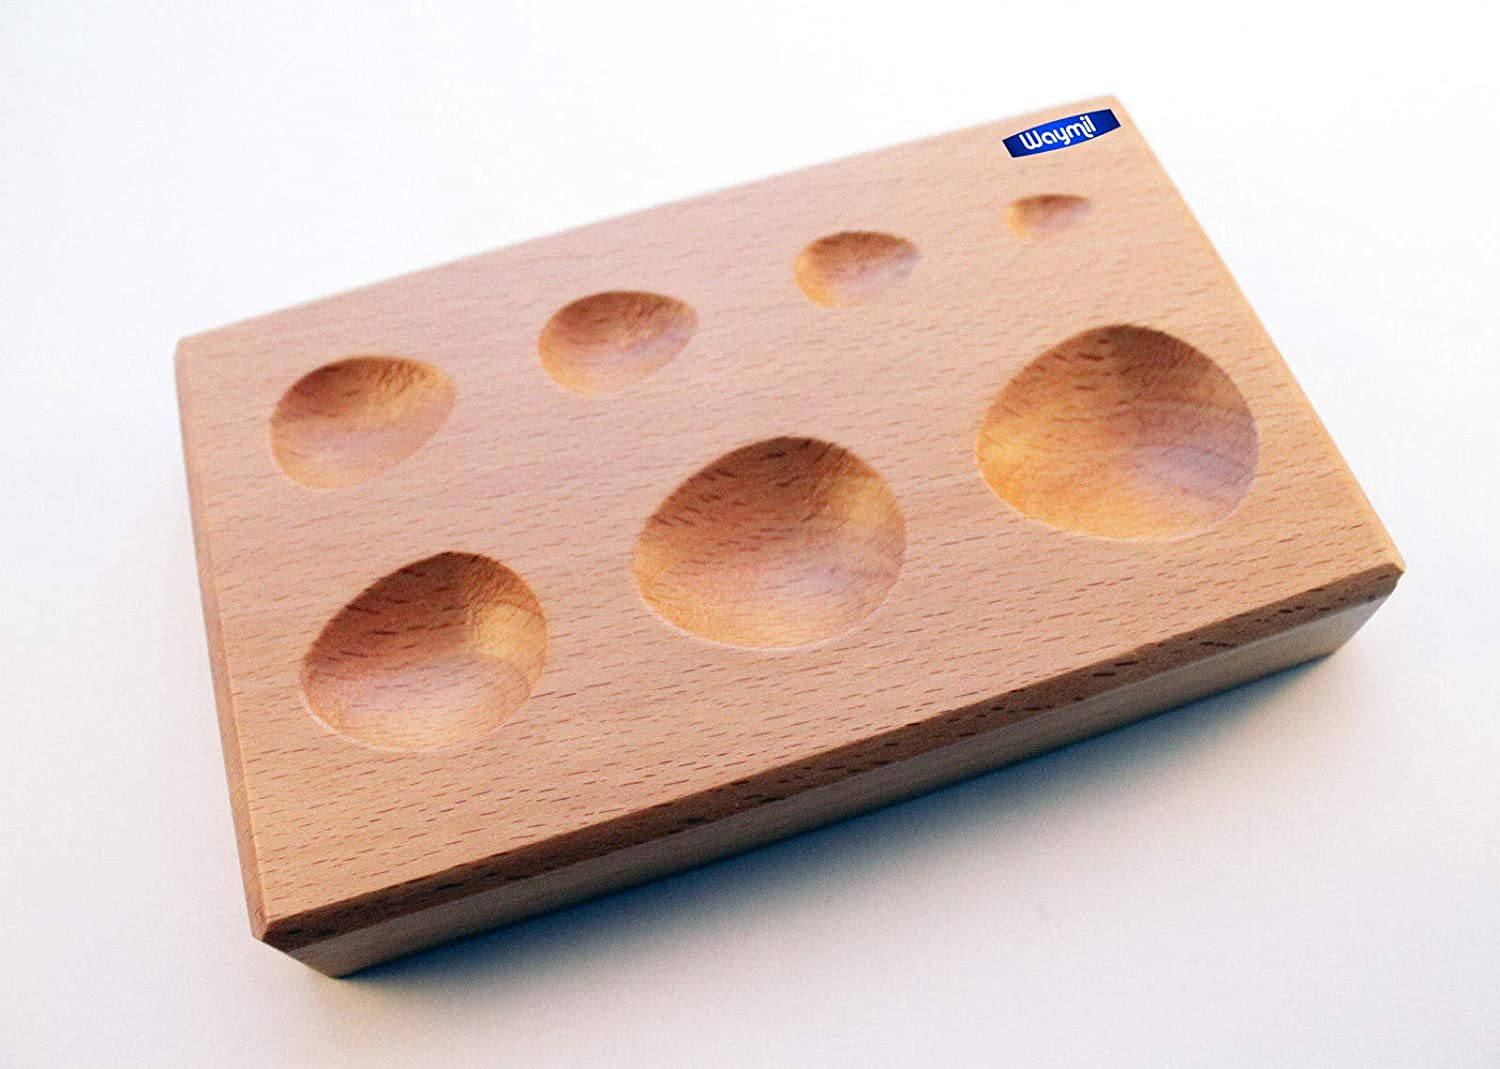 STAR FORMING BLOCK WOOD DAPPING WOODEN SHAPING TOOL JEWELRY FORMS SHAPE 7 SIZES